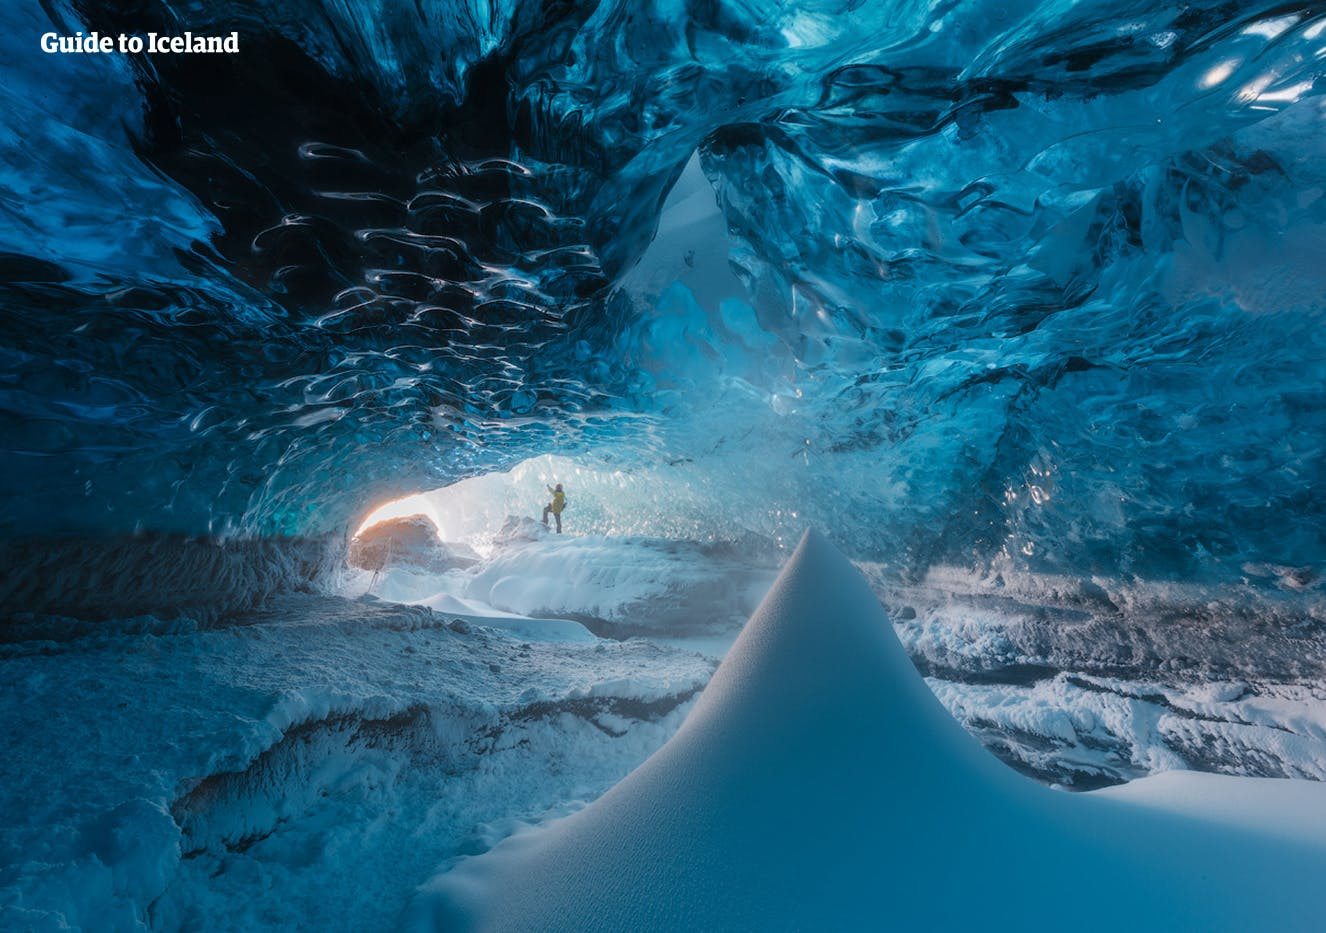 No ice cave in Iceland is exactly alike another.